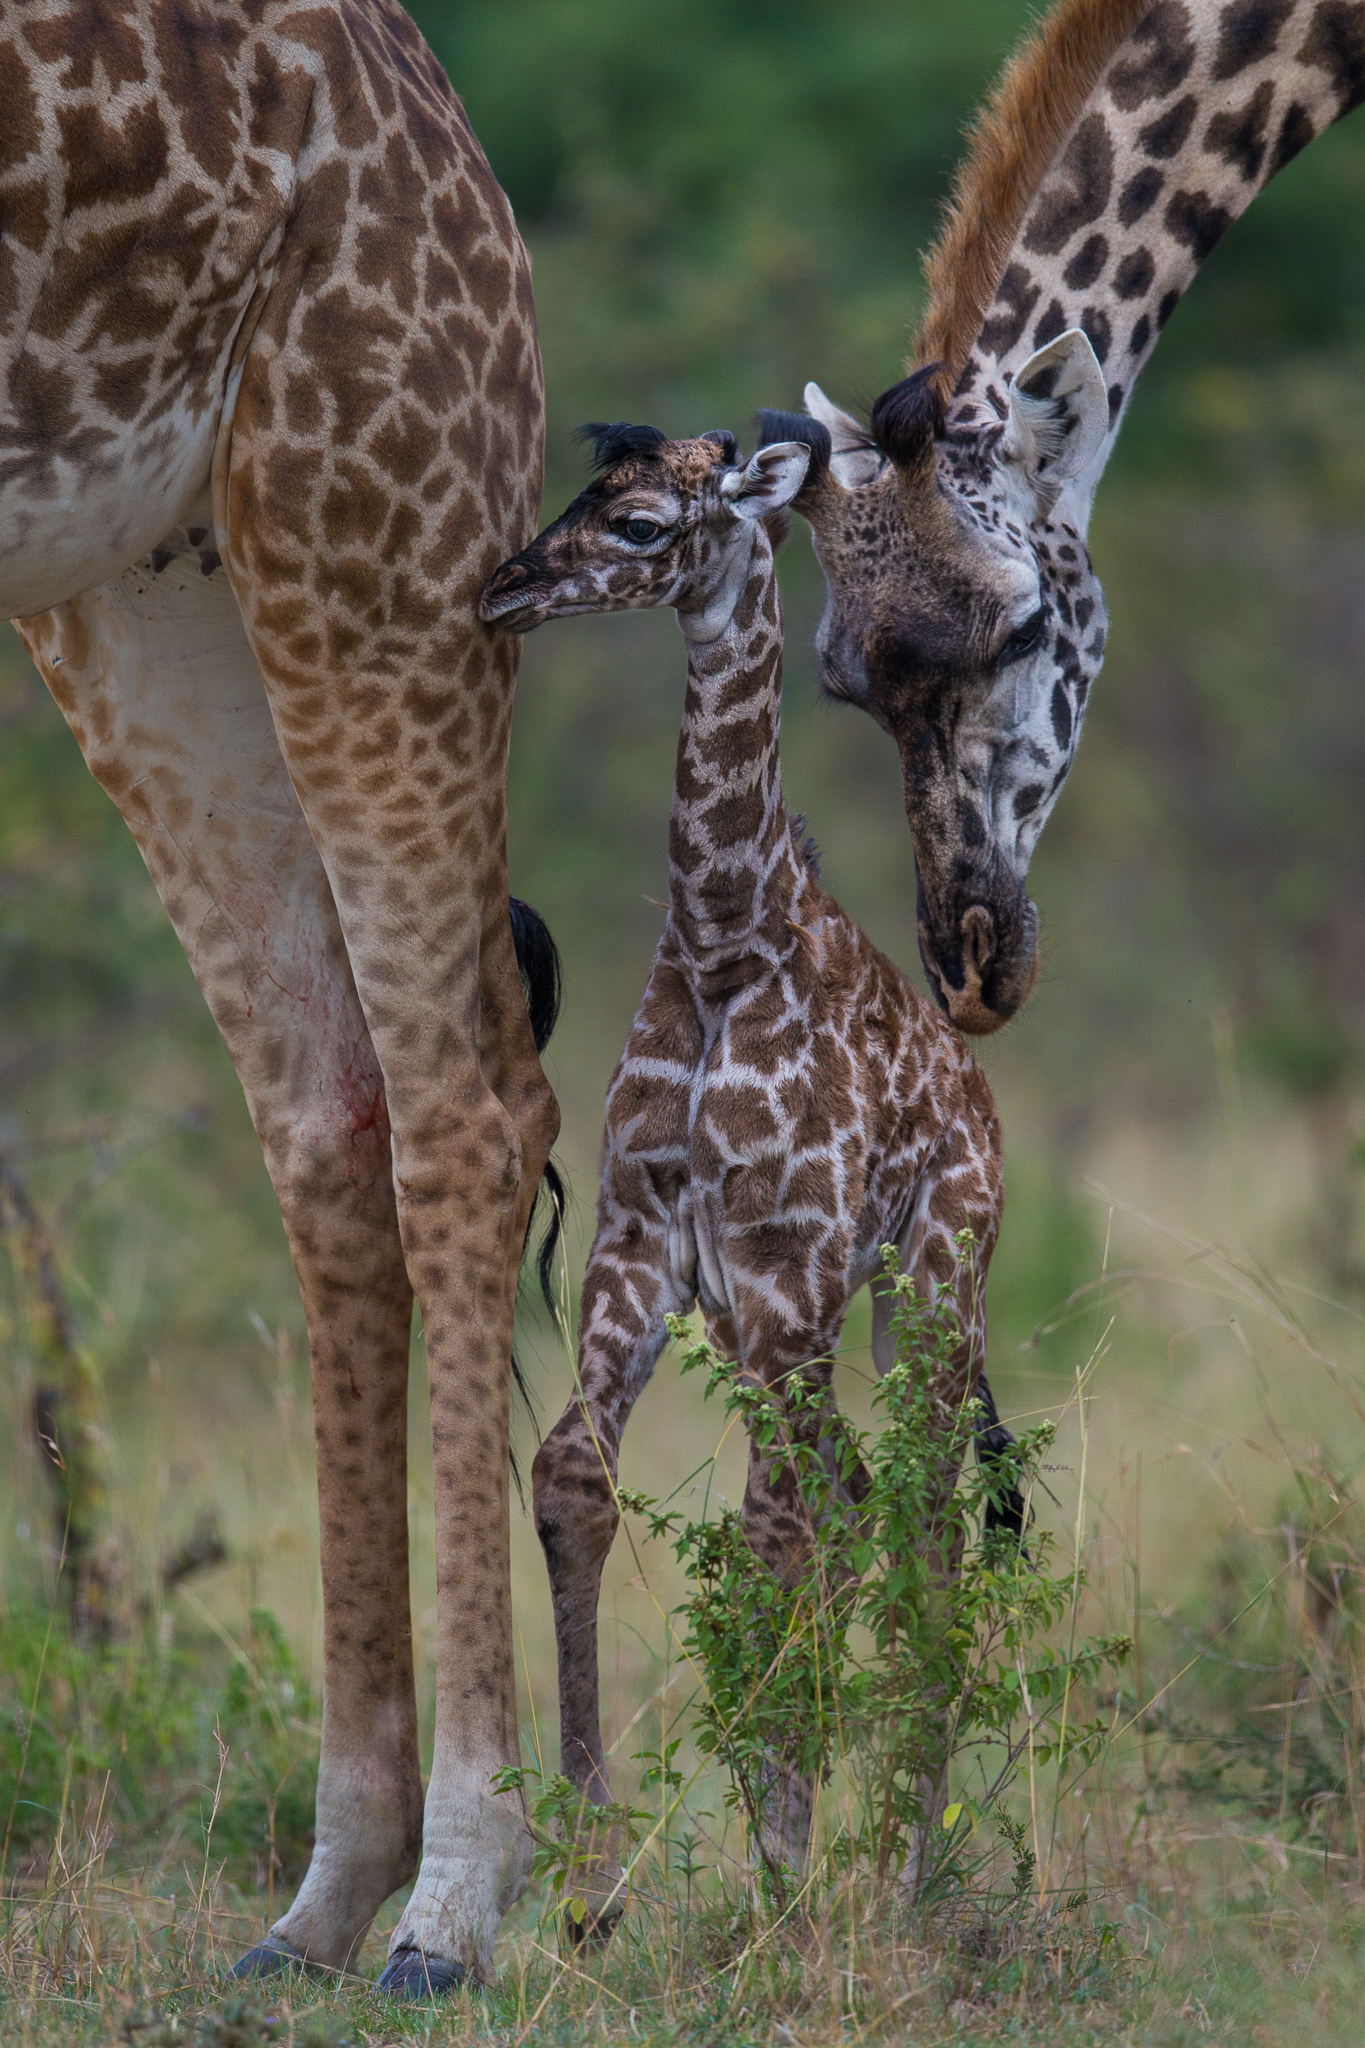 A newborn giraffe stands close to its mother while family members investigate the group's latest addition.